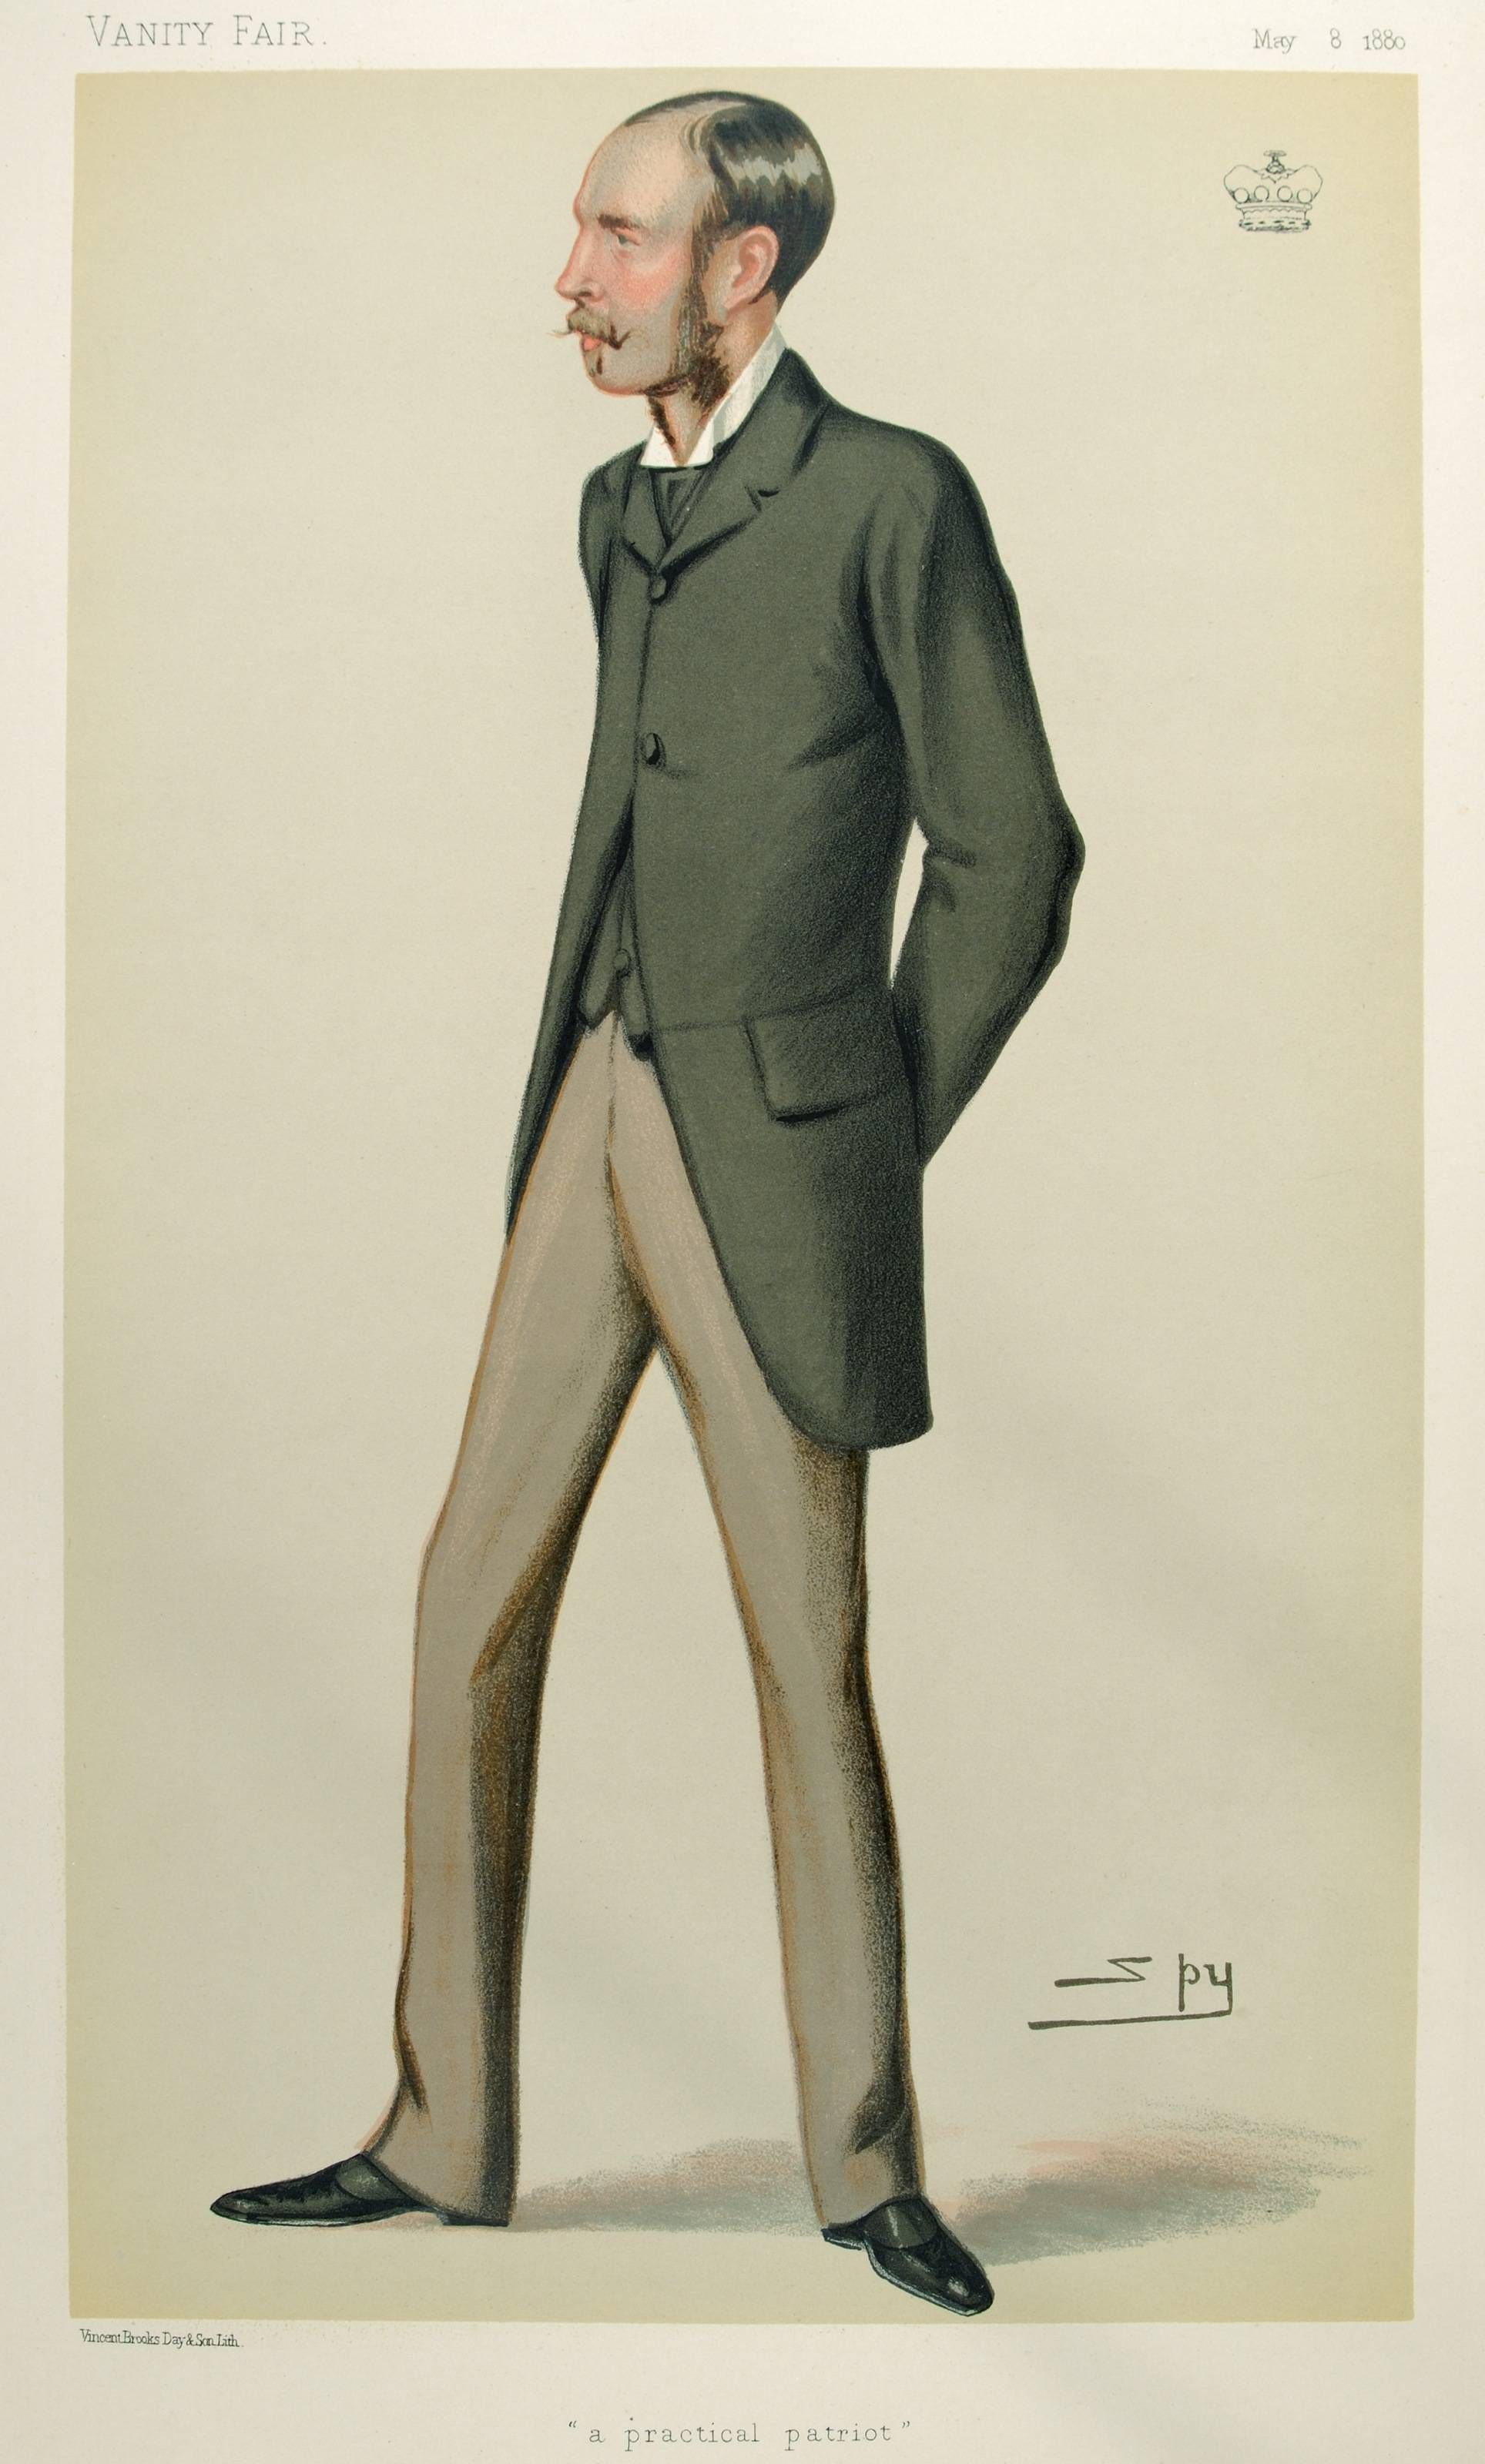 A caricature of the Baron published in Vanity Fair in 1880. Public domain.